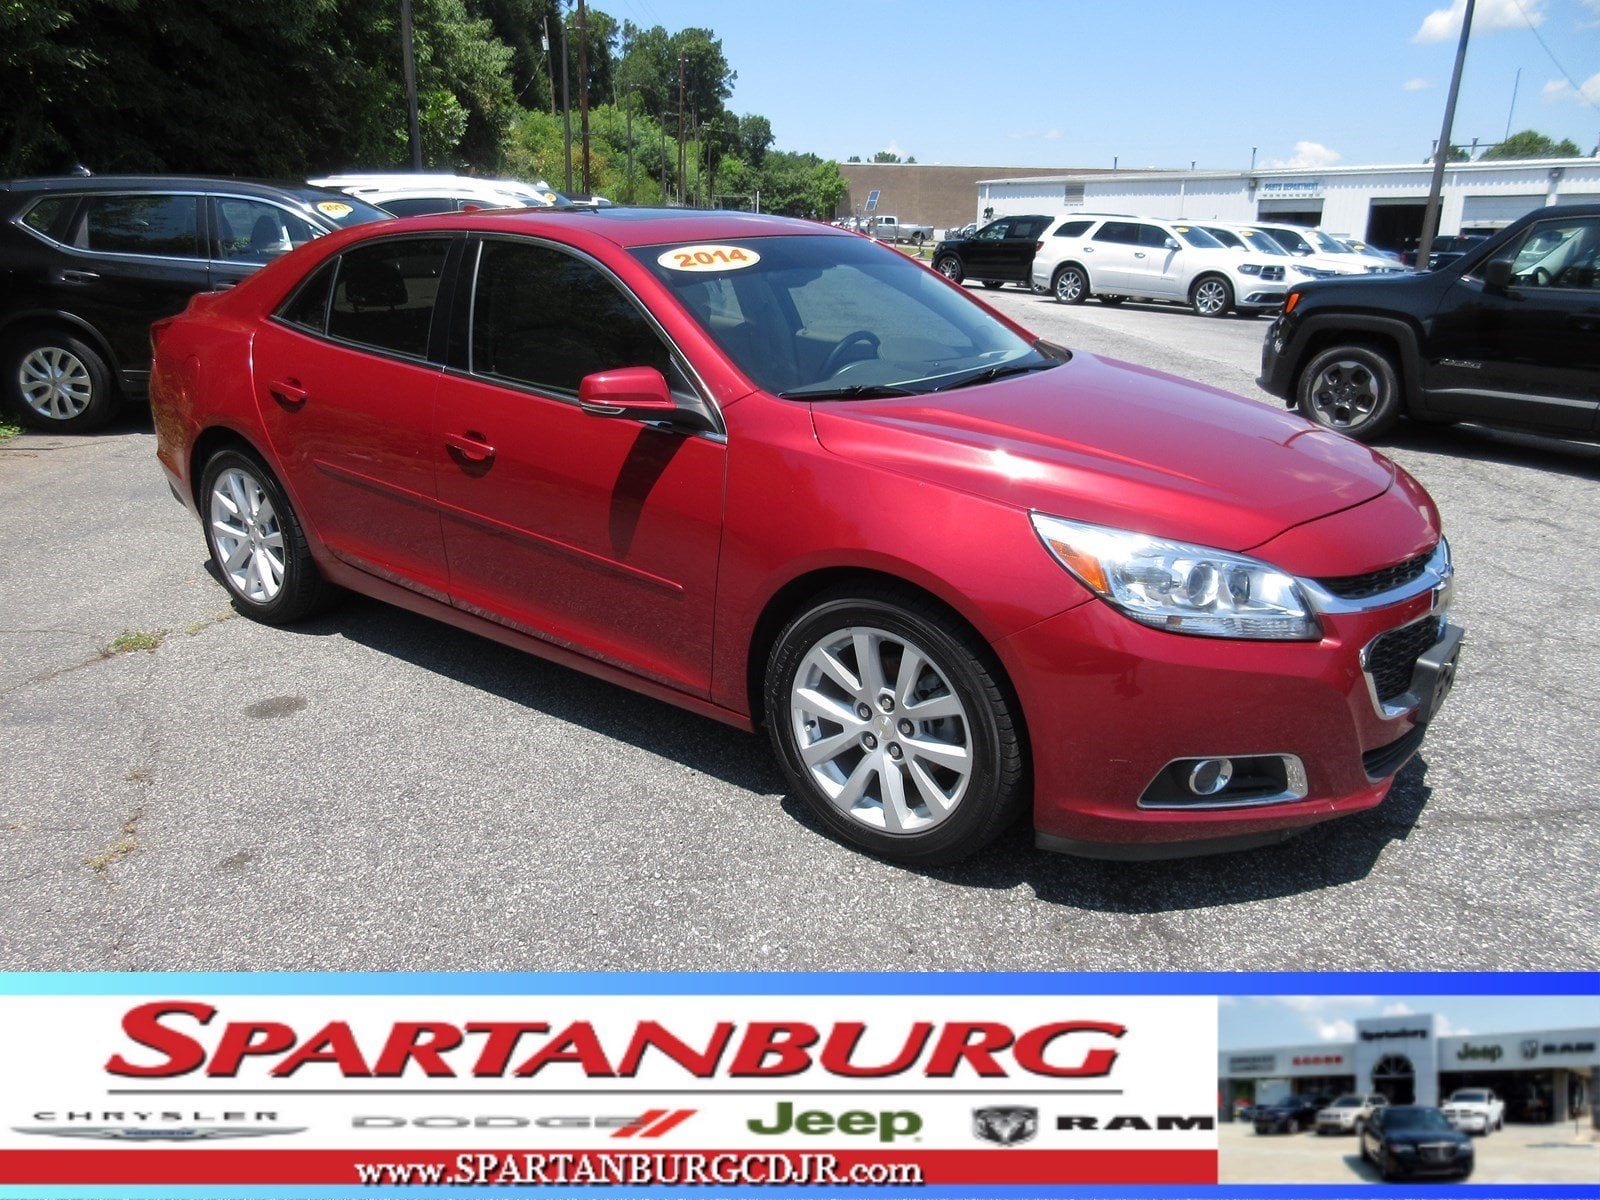 Used Sedan SUV Truck Specials & Offers For Sale – Spartanburg SC